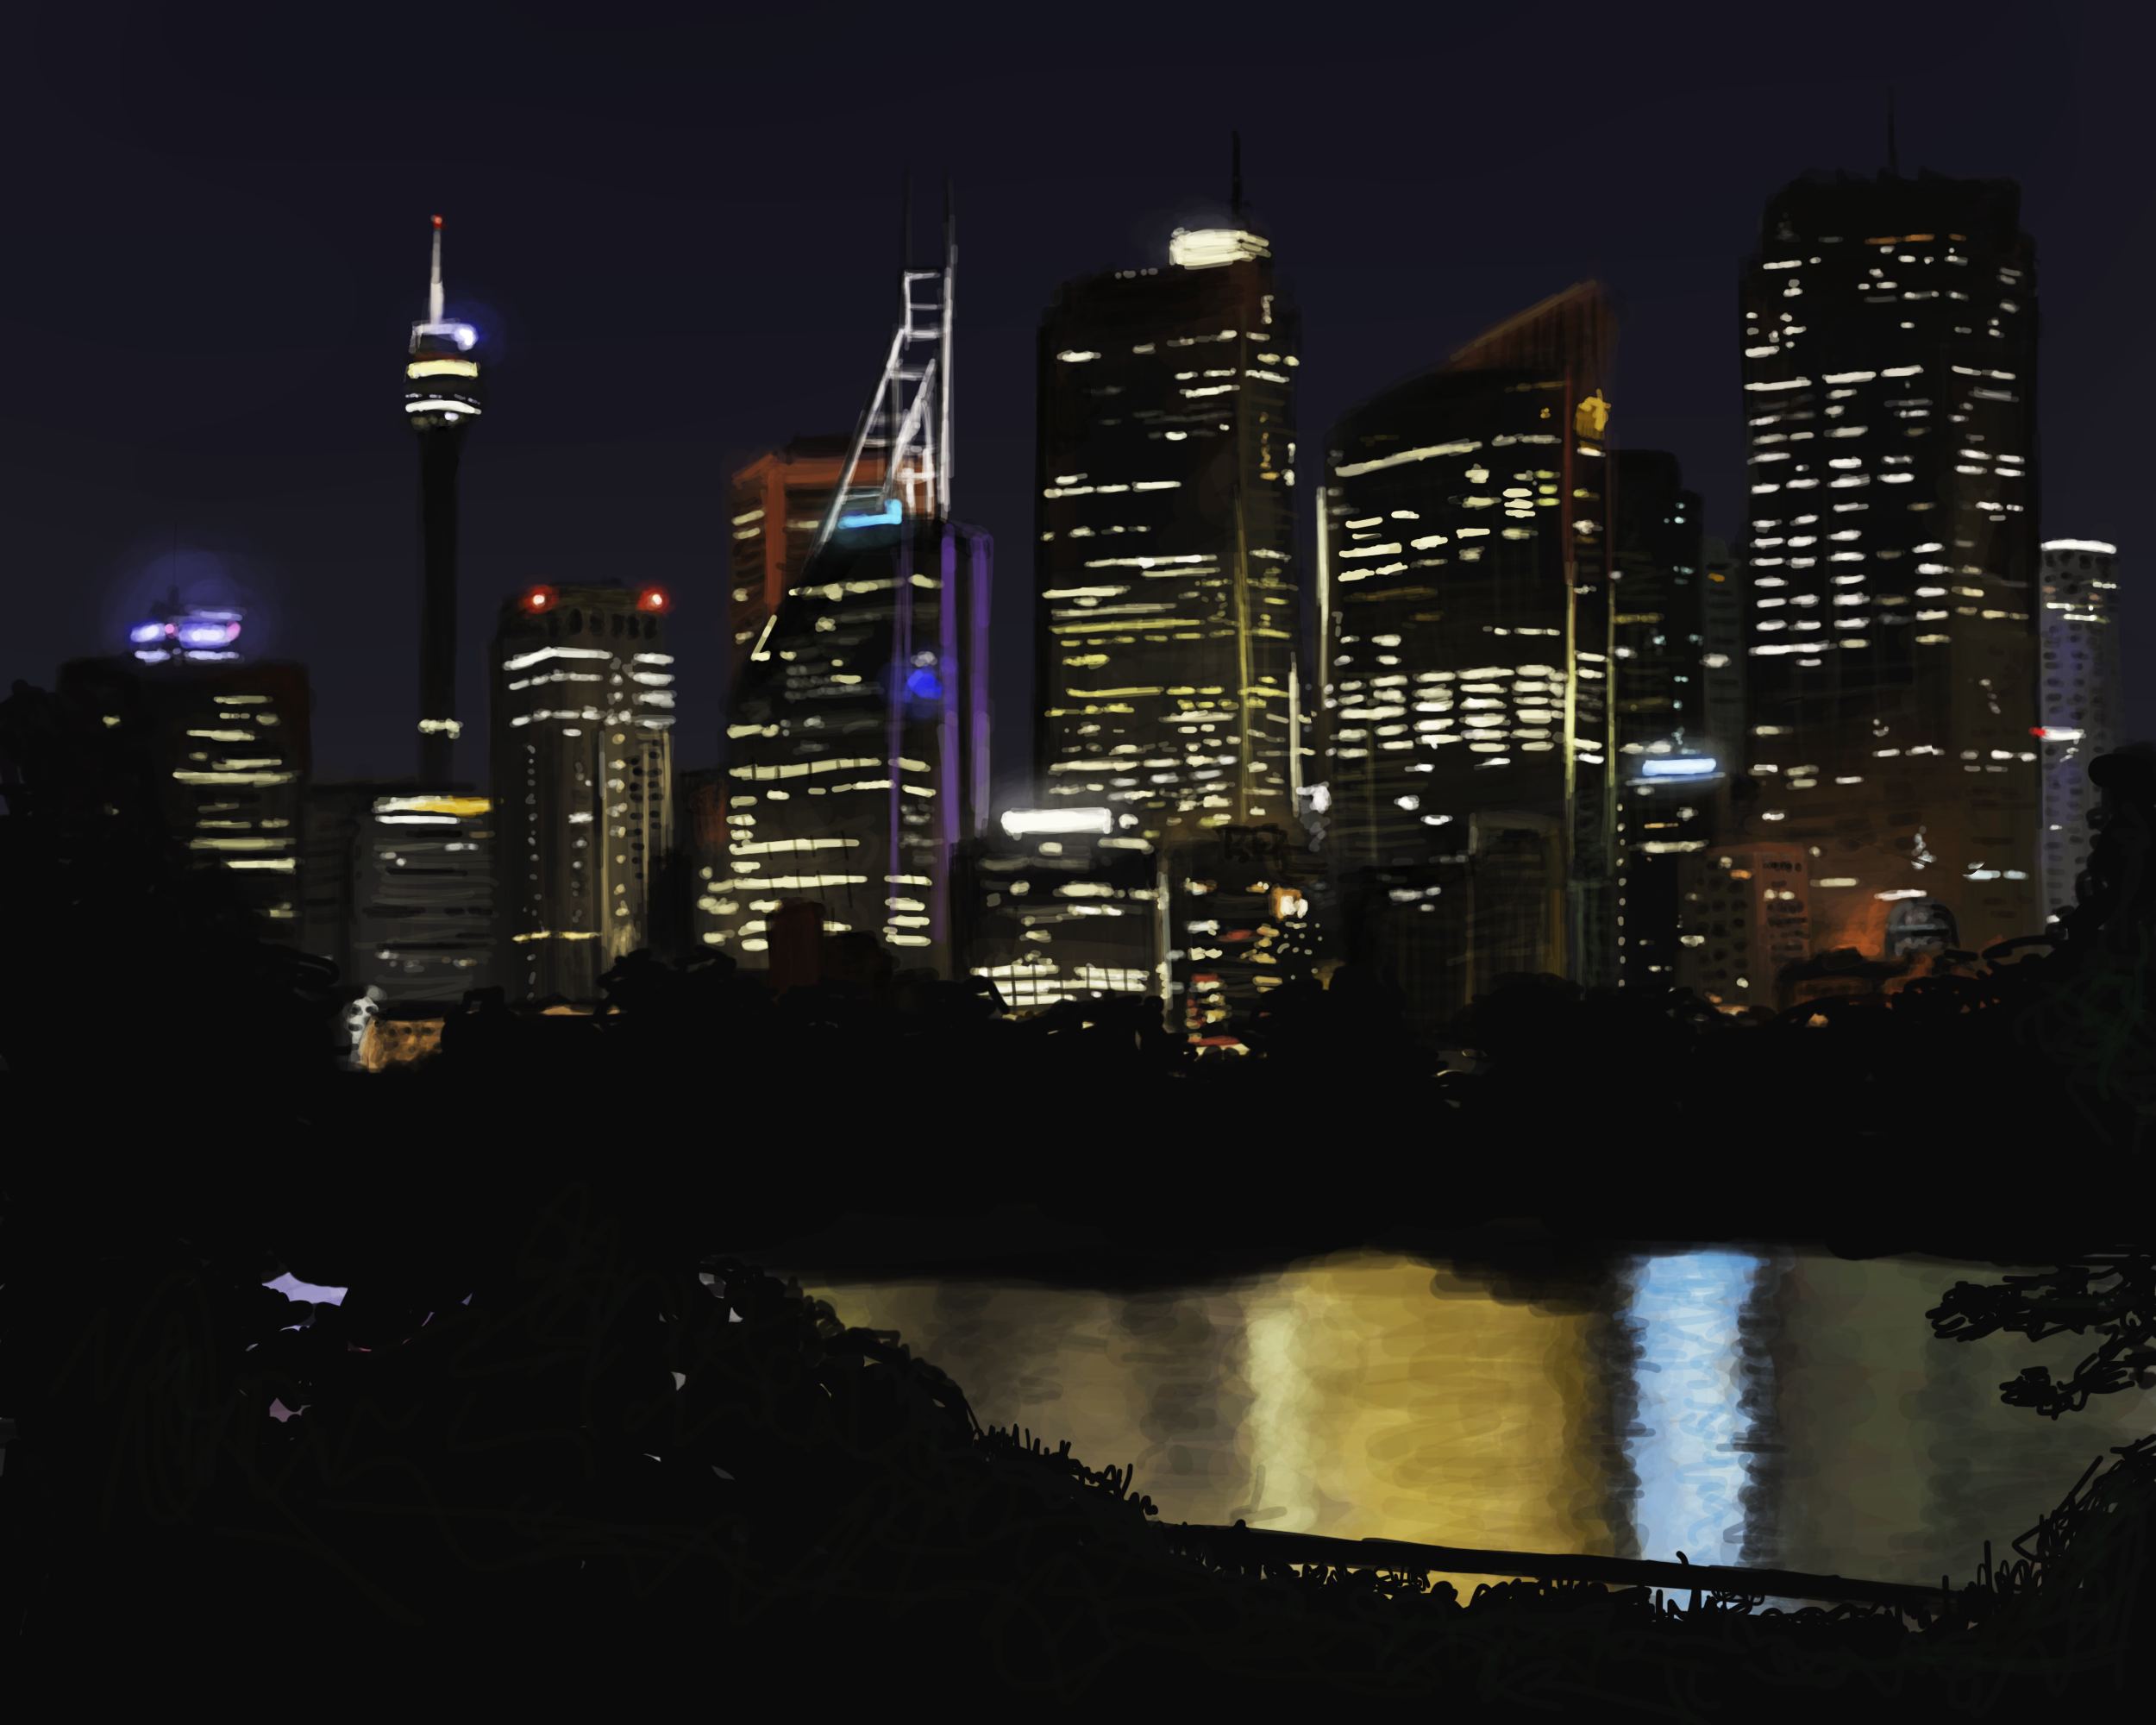 Night Time City Skyline by hytermmma on DeviantArt